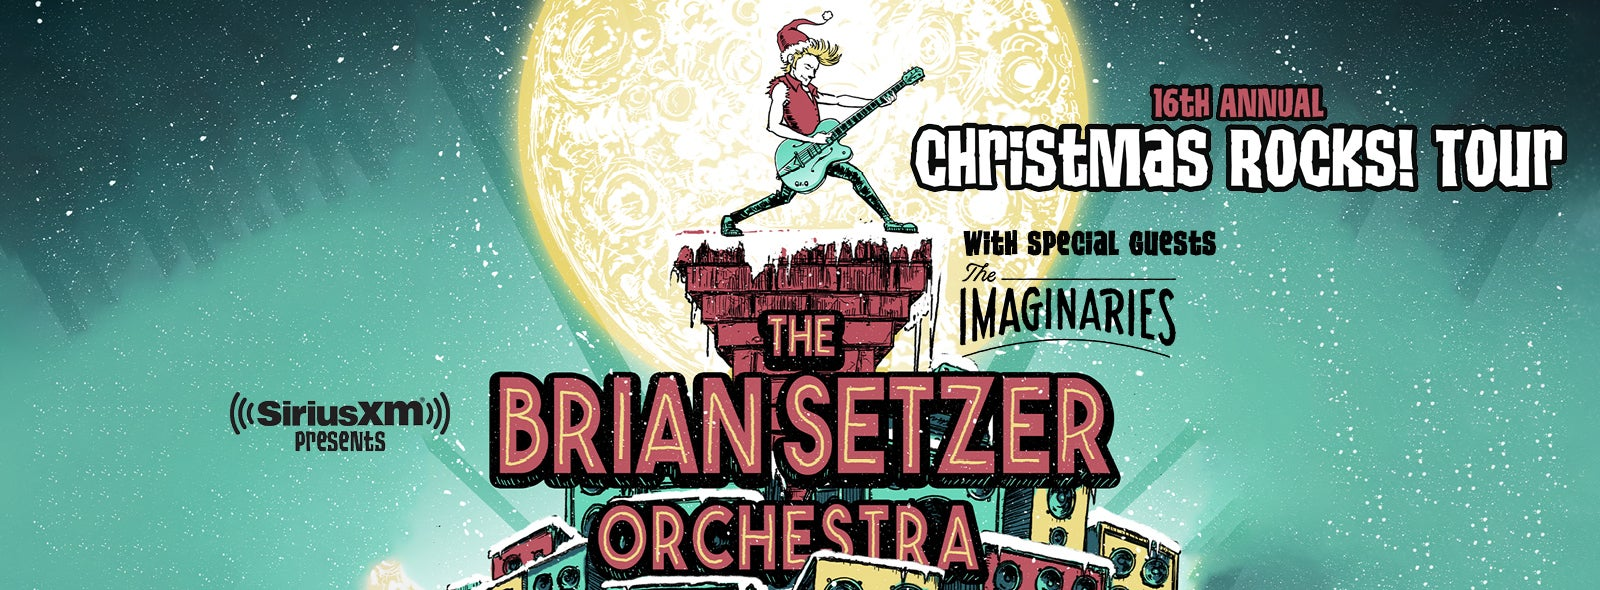 Sirius Xm Christmas.Siriusxm Presents The Brian Setzer Orchestra S 16th Annual